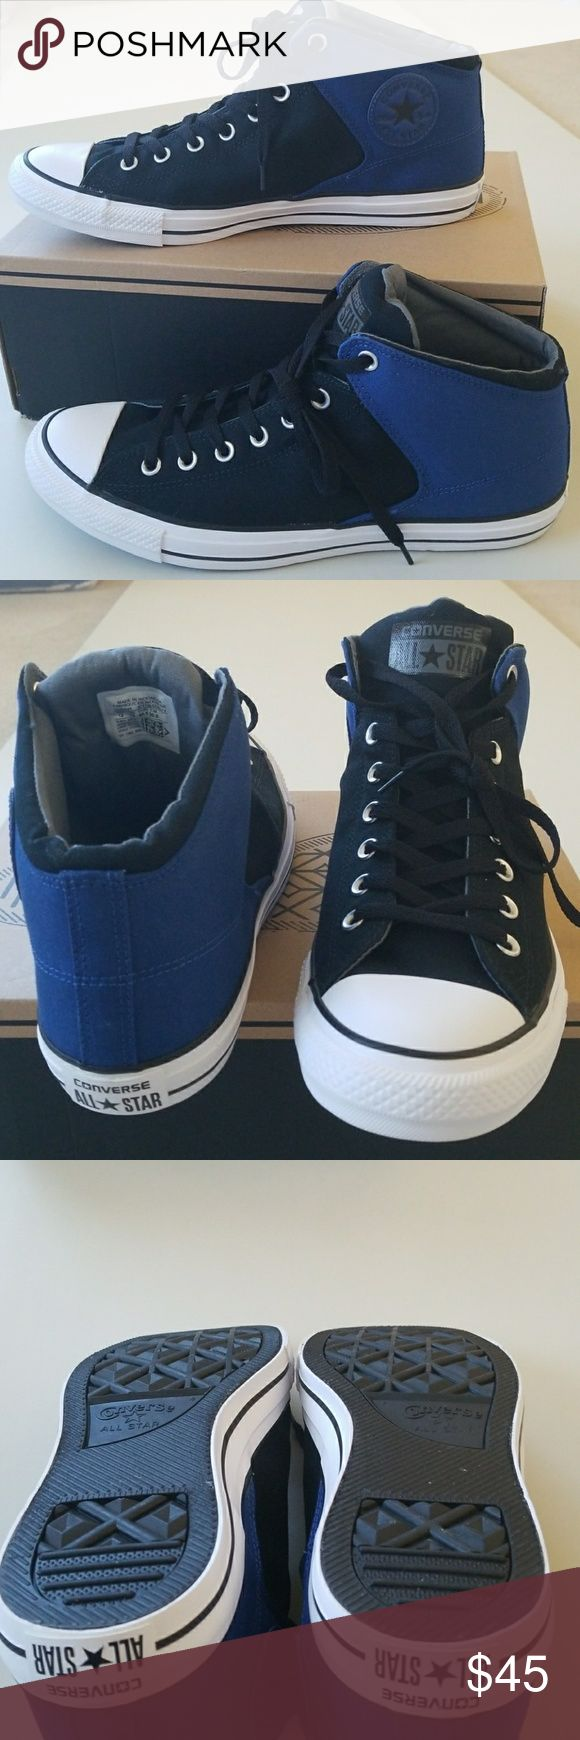 NWT Men's  Converse New really awesome Converse. Missing box top. Converse Shoes Sneakers